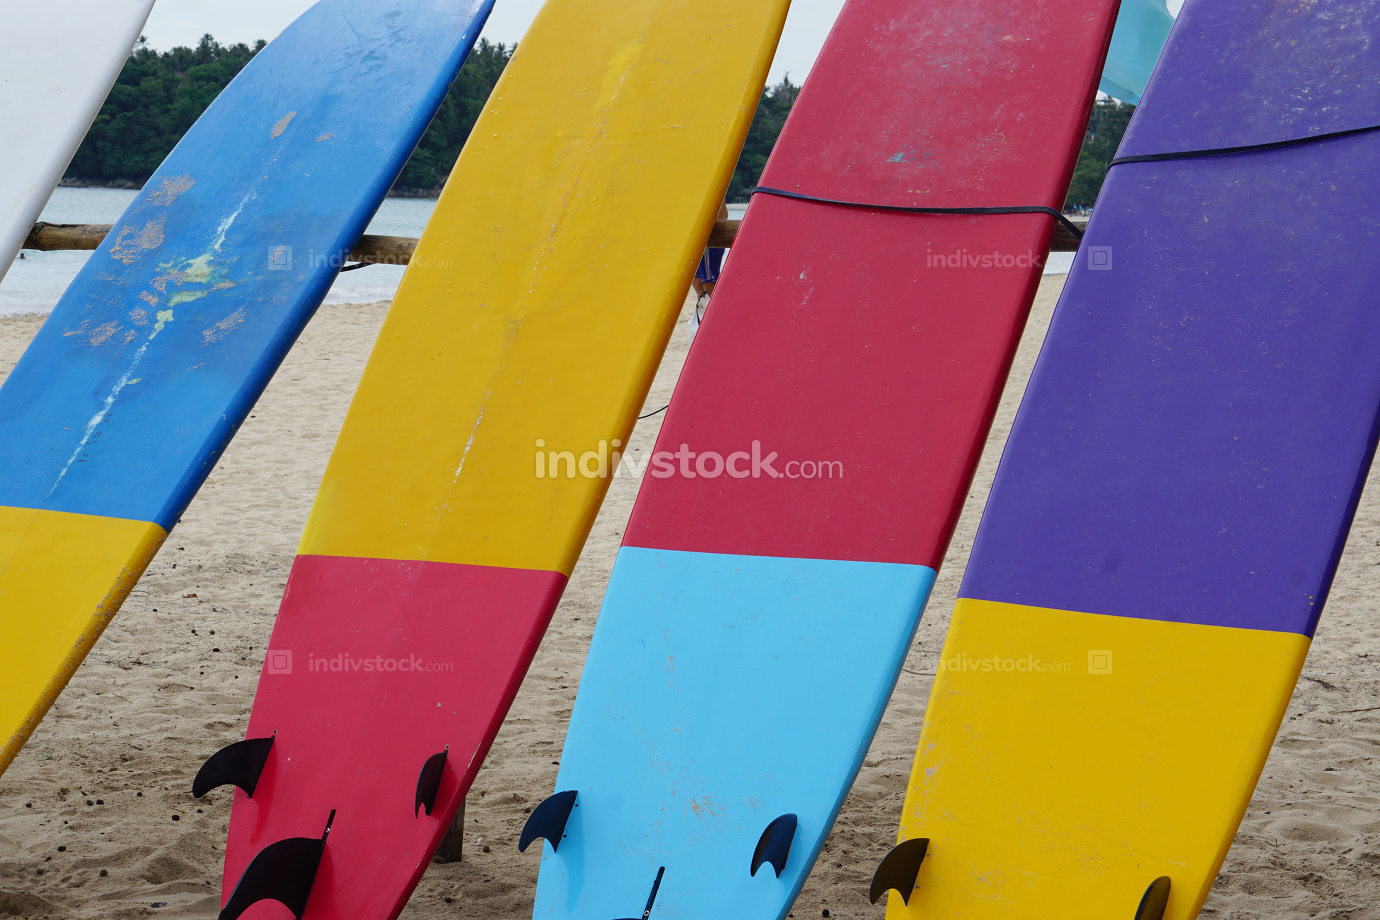 free download: surfboards on the beach for rent